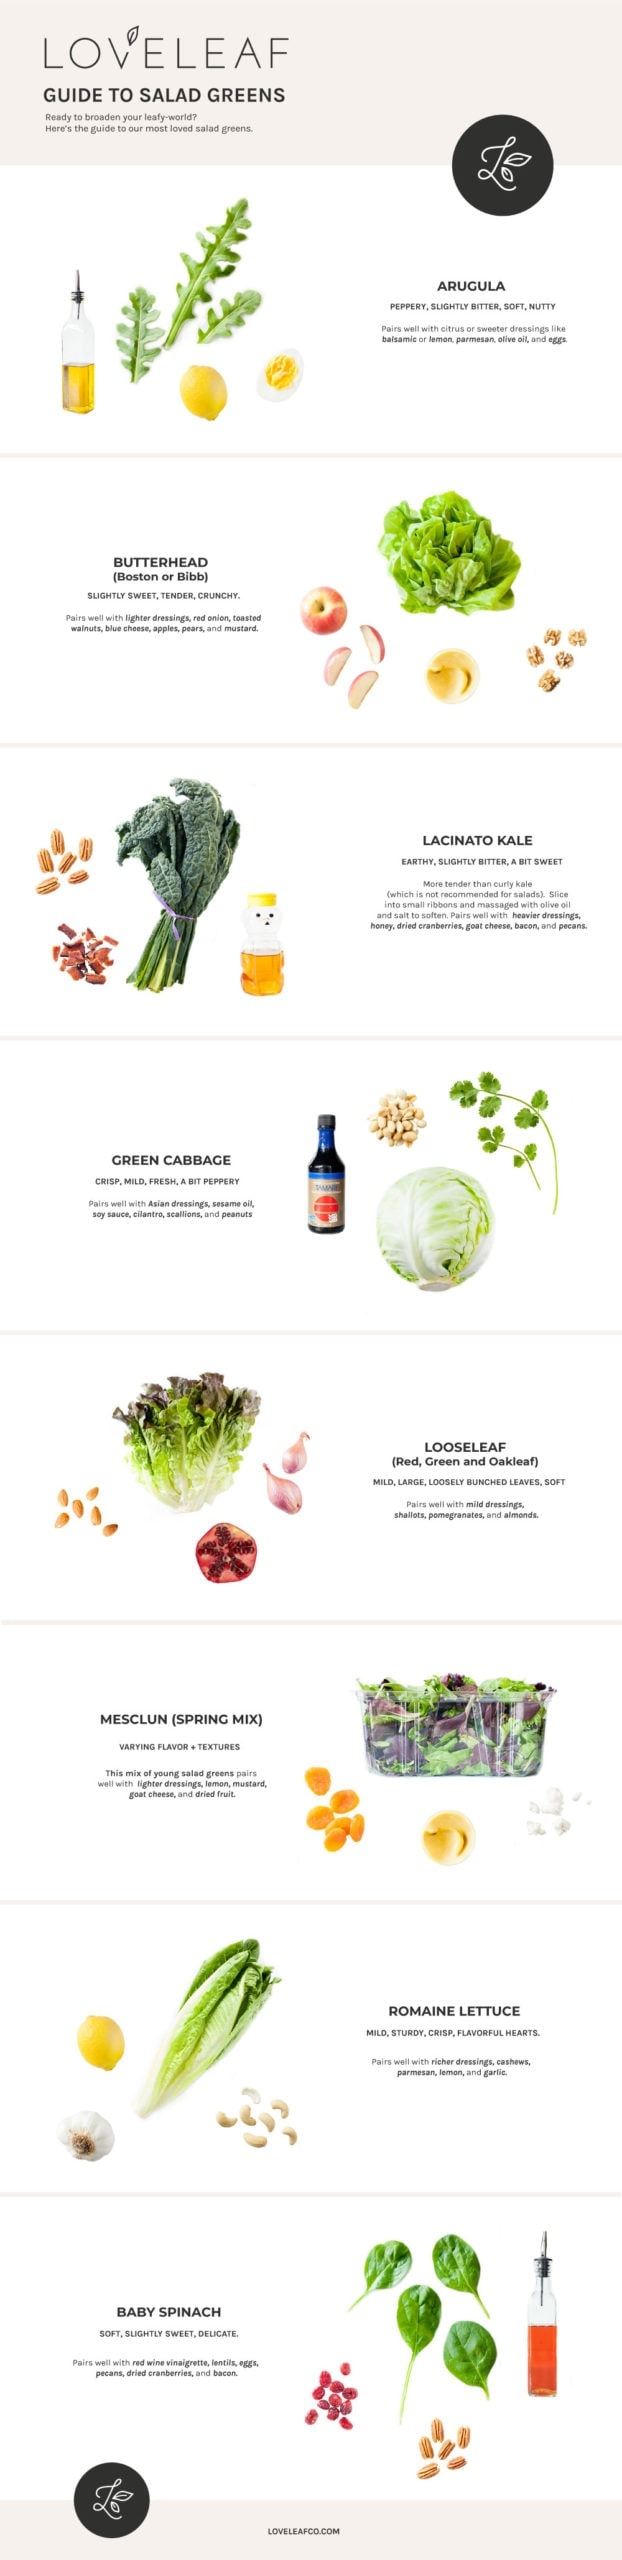 Guide to salad greens infographic.